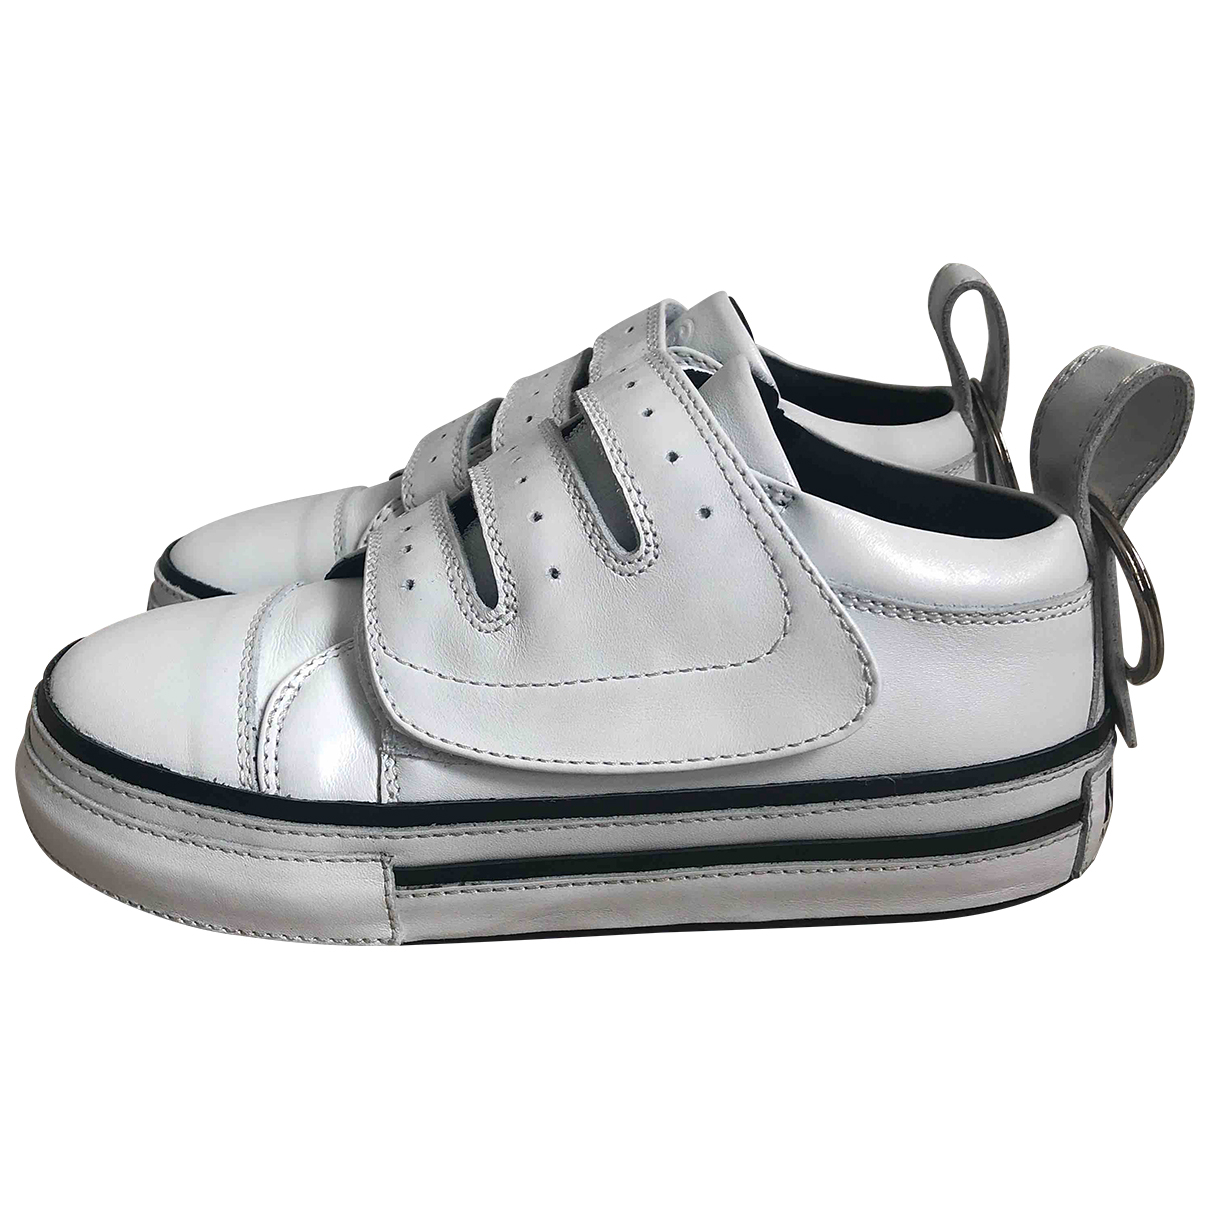 Mm6 \N White Leather Trainers for Women 37 EU